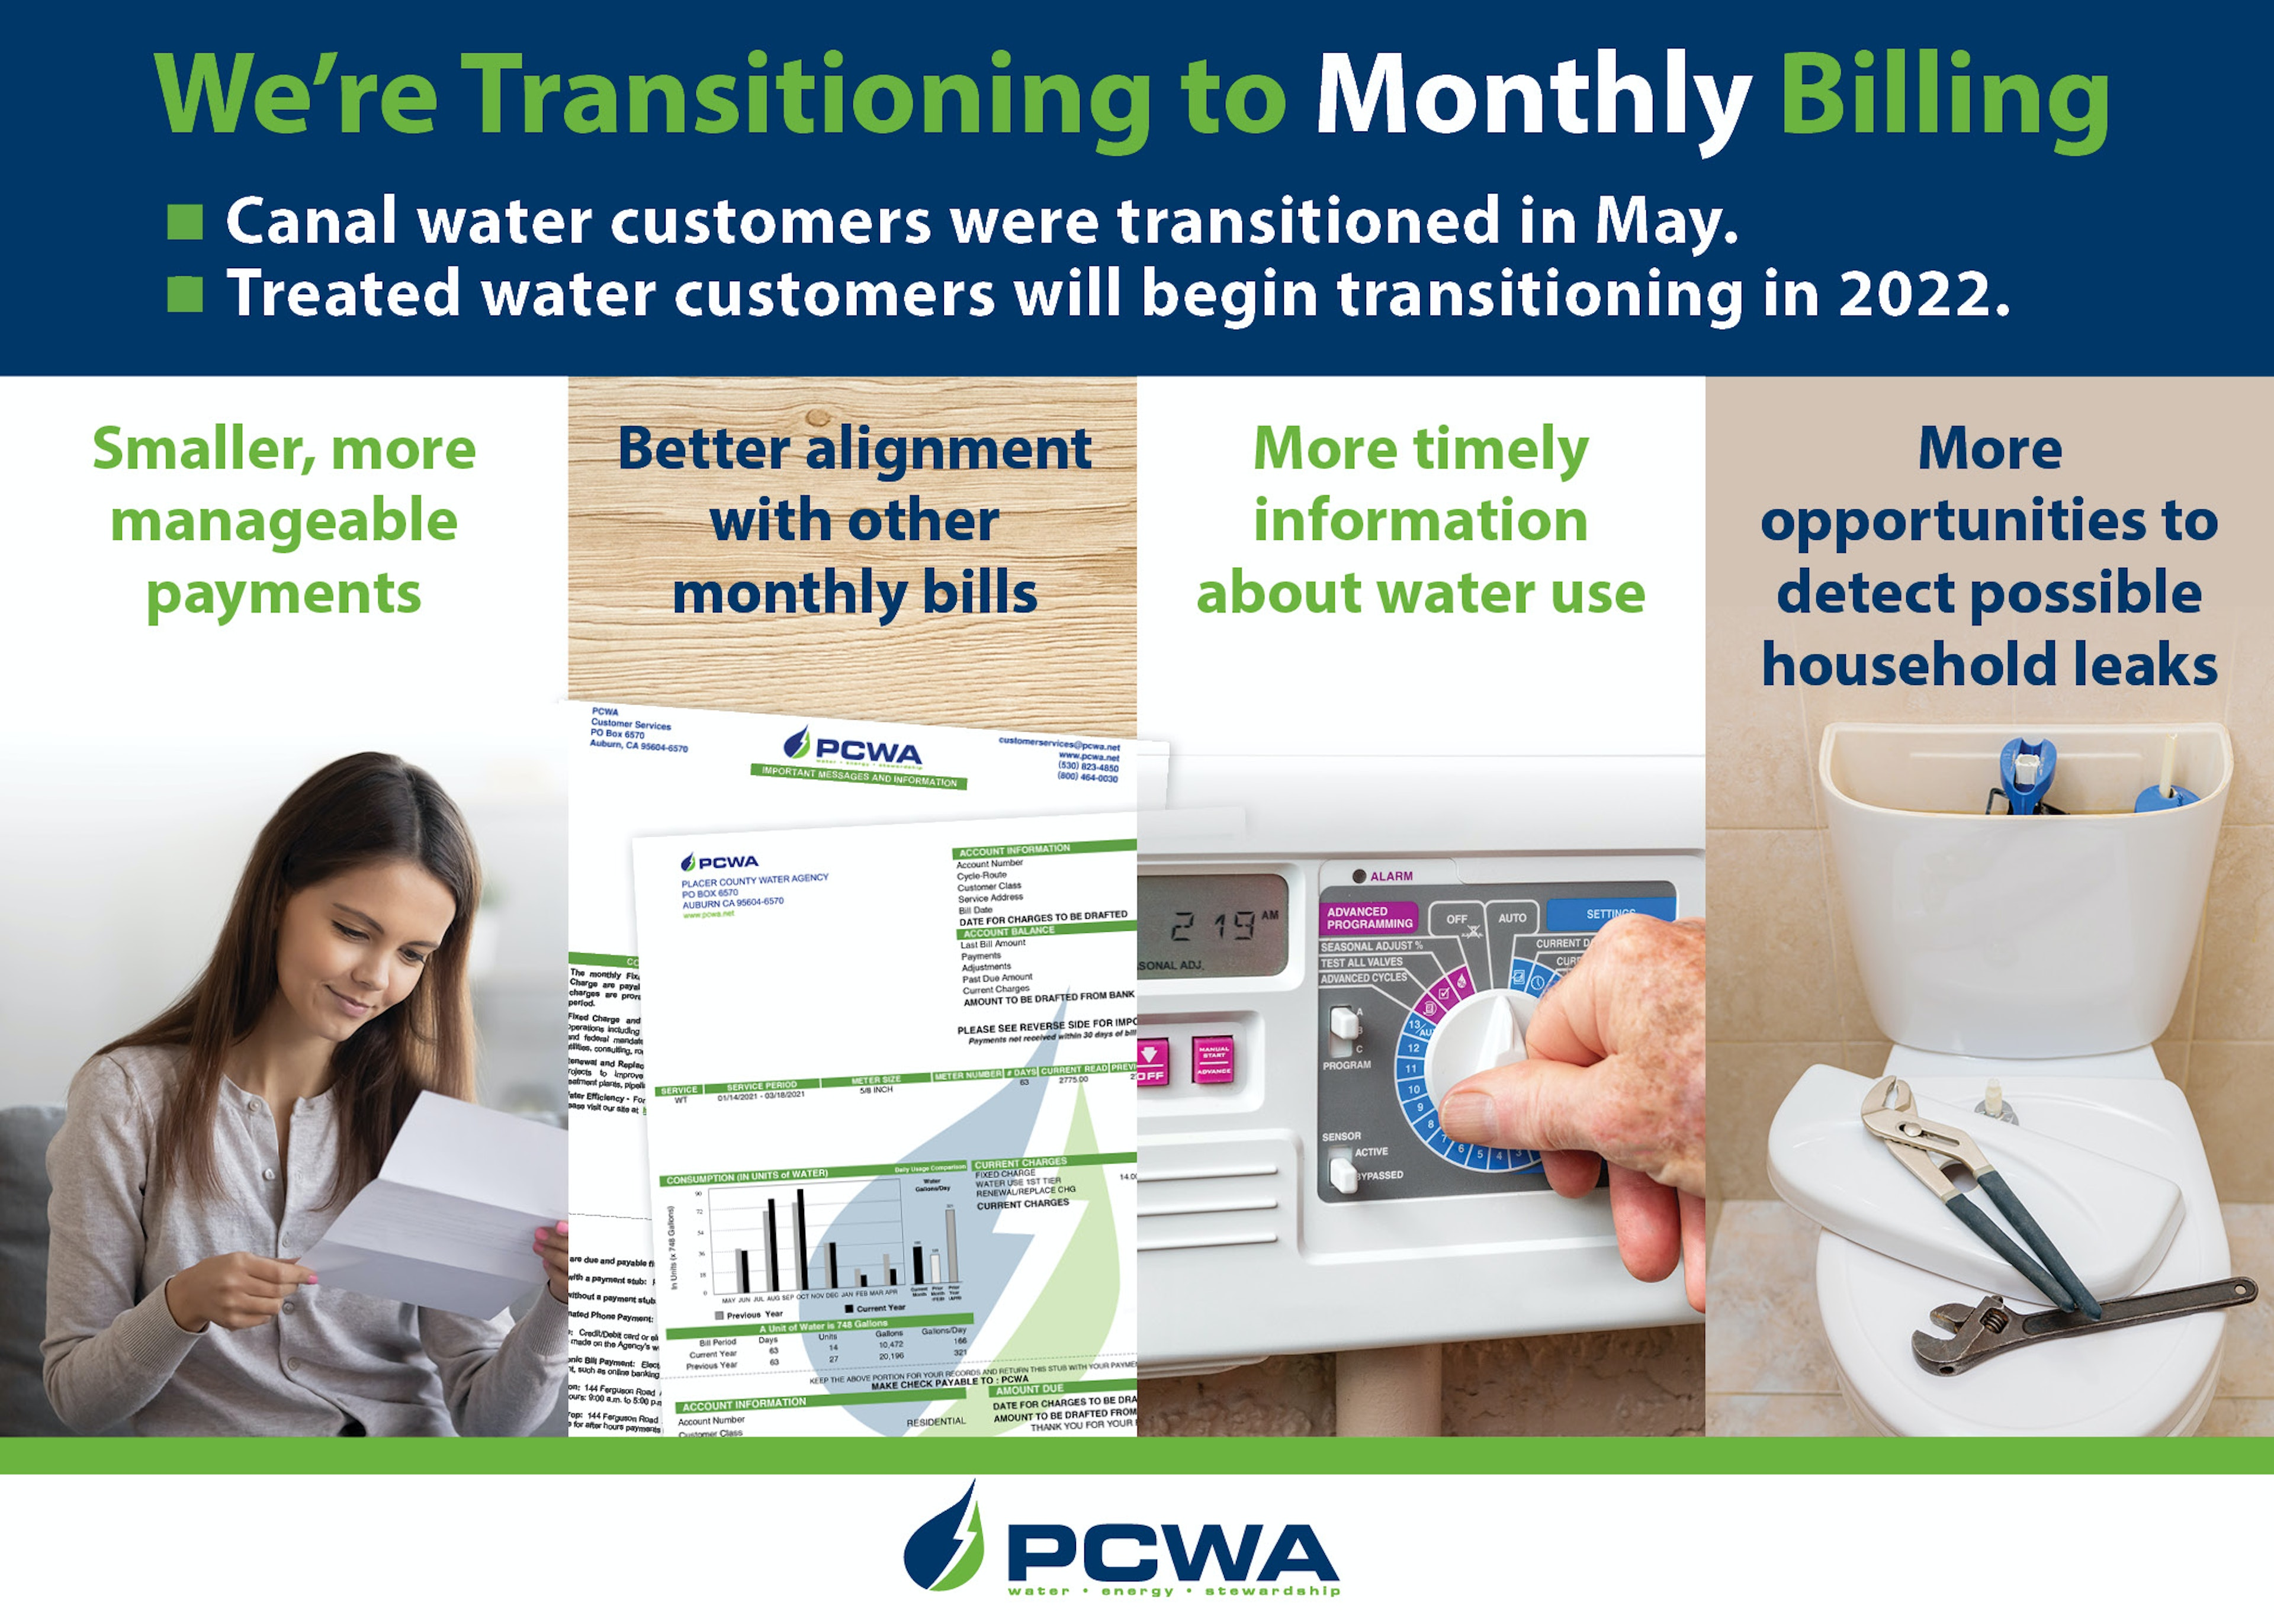 PCWA is transitioning to monthly billing